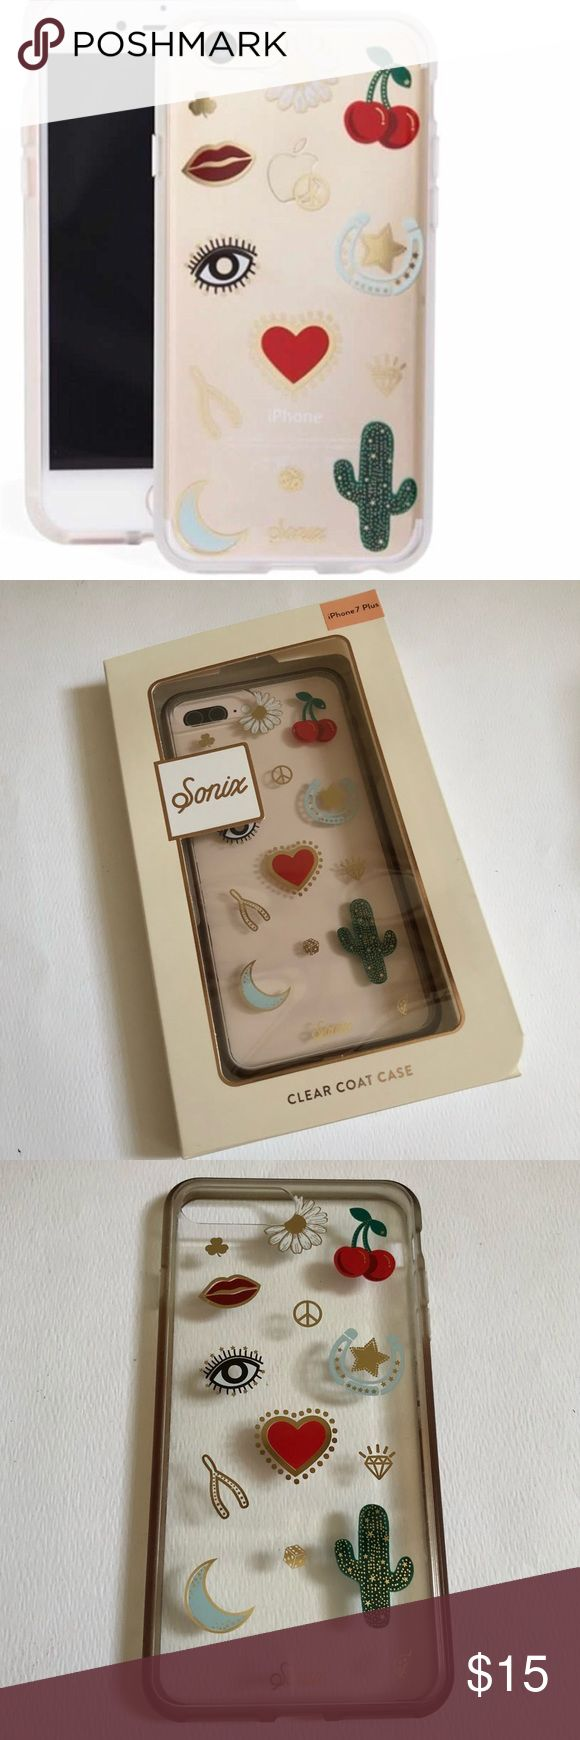 Sonix IPhone 7 Plus iPhone 8 Plus Phone Case Super cute clear graphic iPhone 7 Plus case that also fits iPhone 8Plus by Nordstrom brand Sonix. Gently used and has a slight rough edge all the way around the boarder or the graphics. Enlarge photo 7 to get a close up of part of the edge of the graphic overlay. Can feel it more than see it all the way around. Comes with original box. From Nordstrom. 🚫Trades🚫PP. Nordstrom Accessories Phone Cases